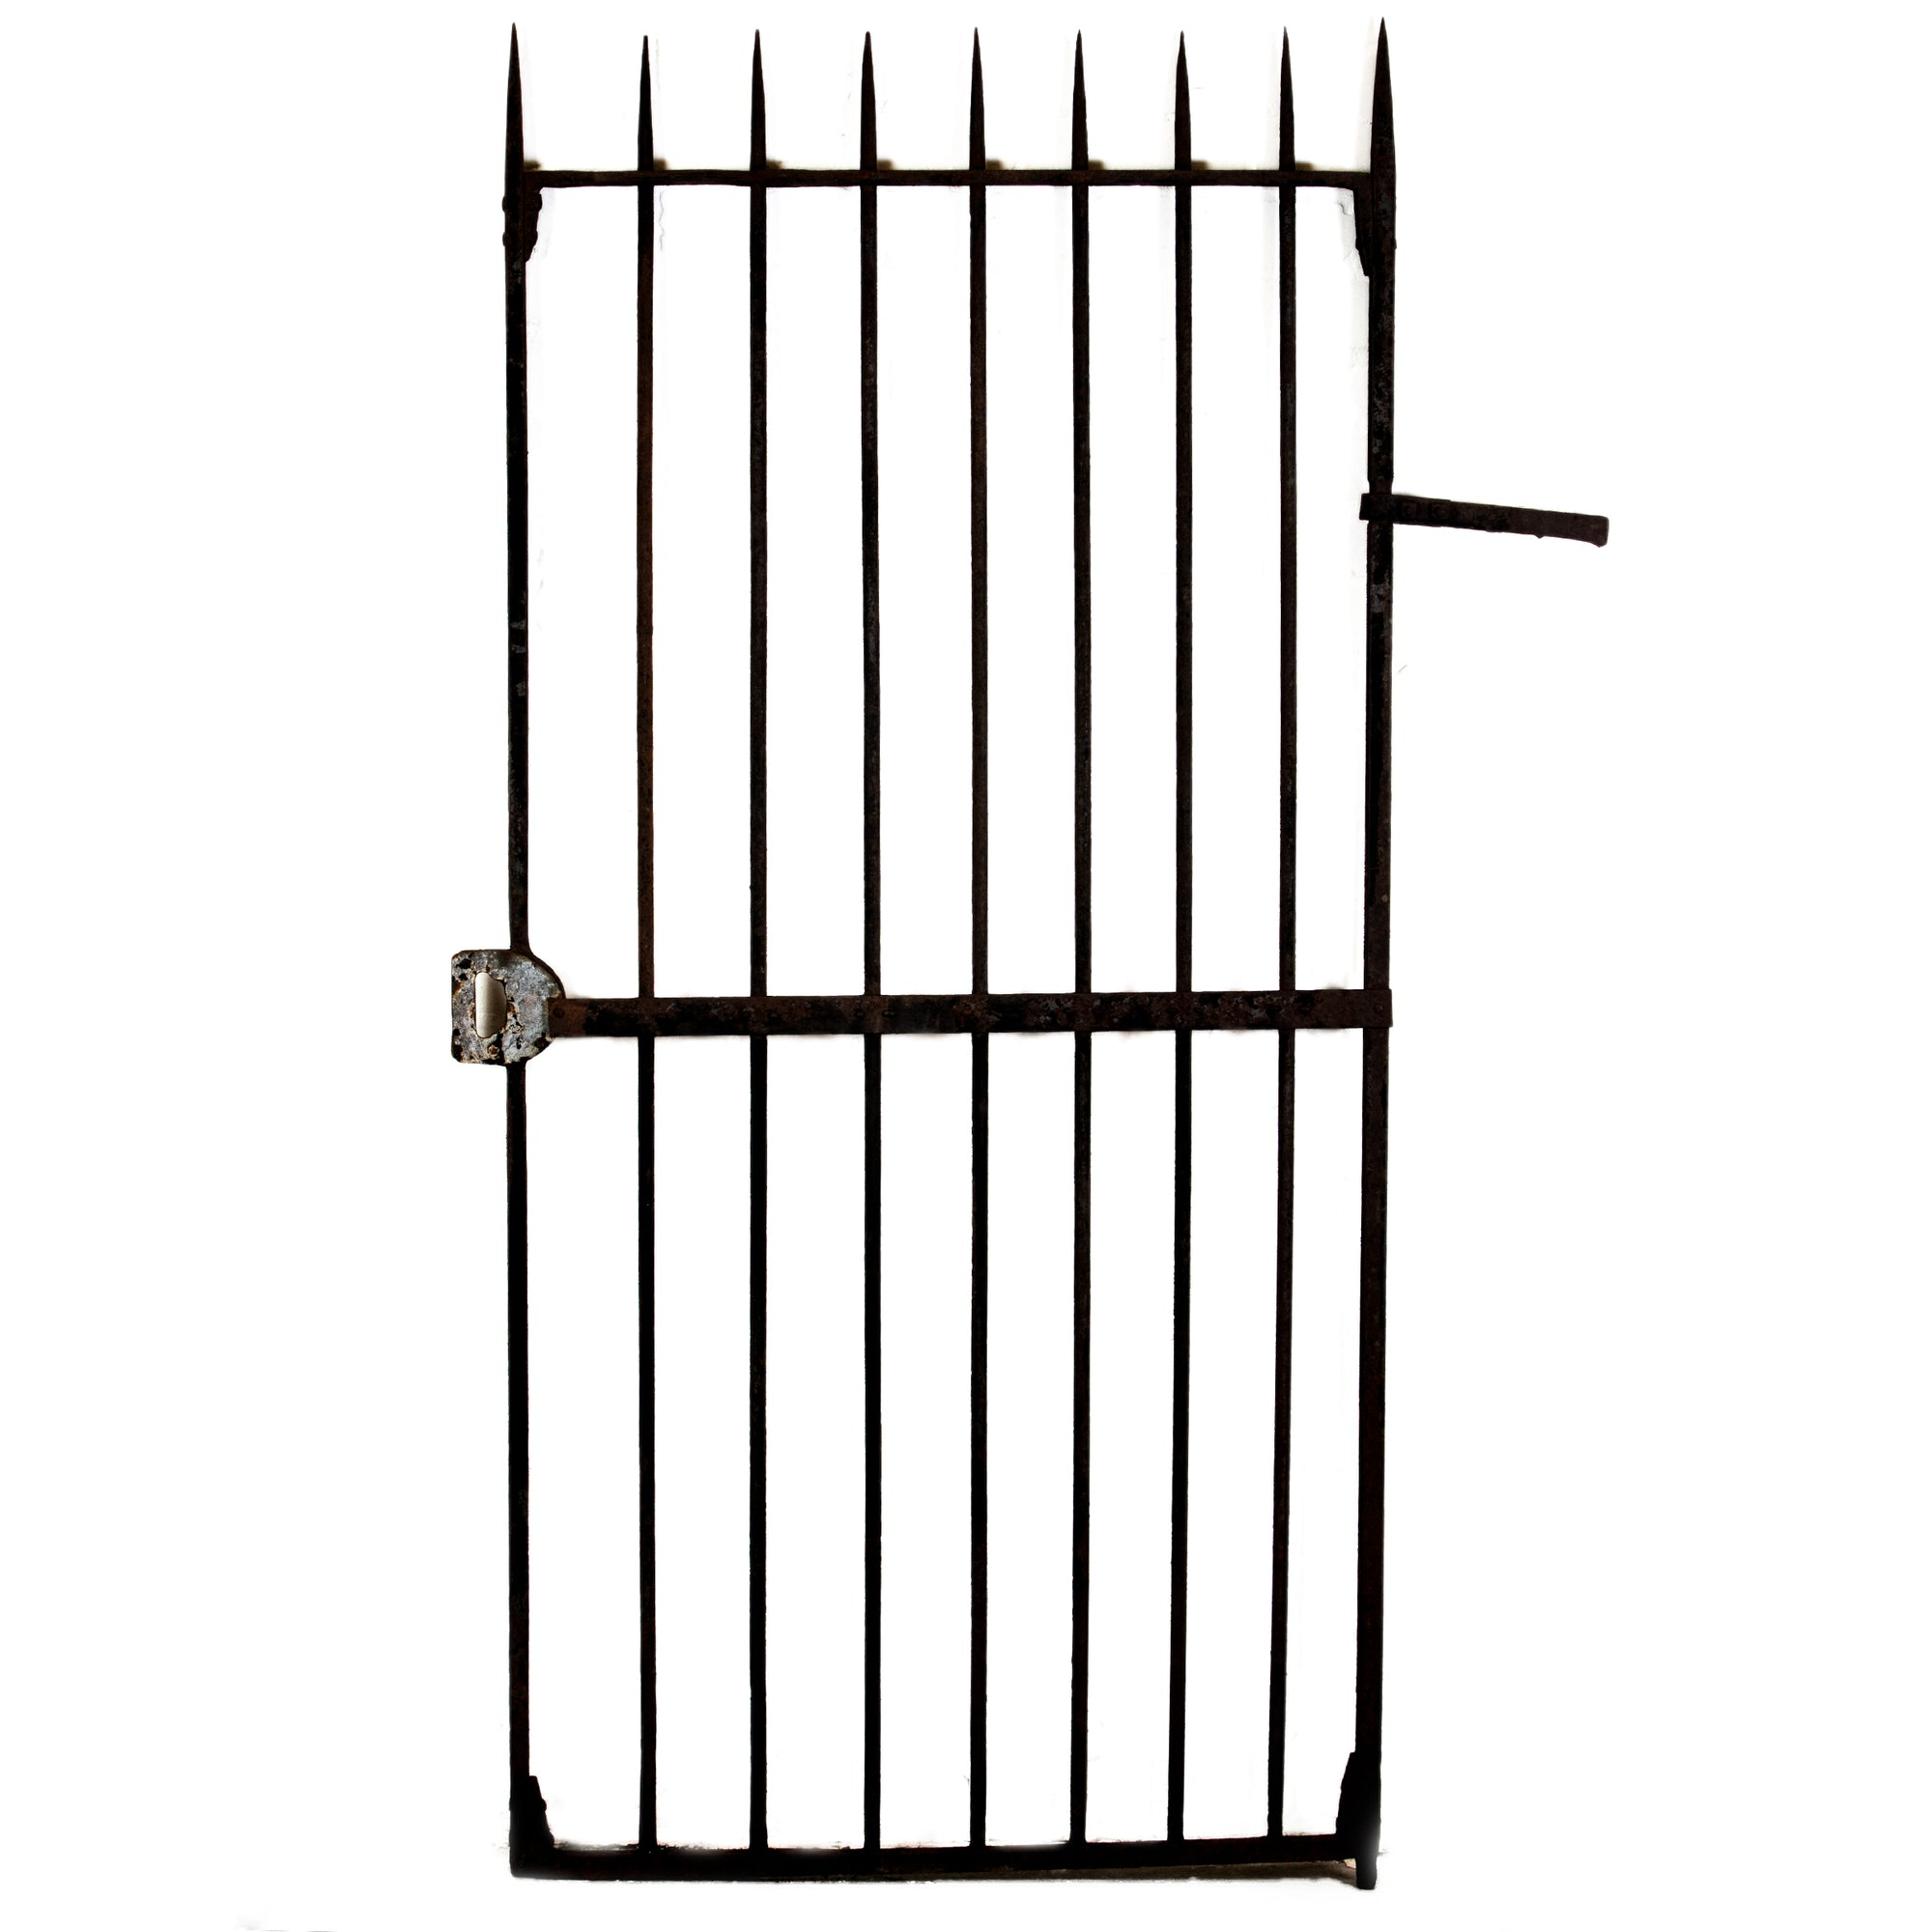 Antique Wrought Iron Gate with Spikes